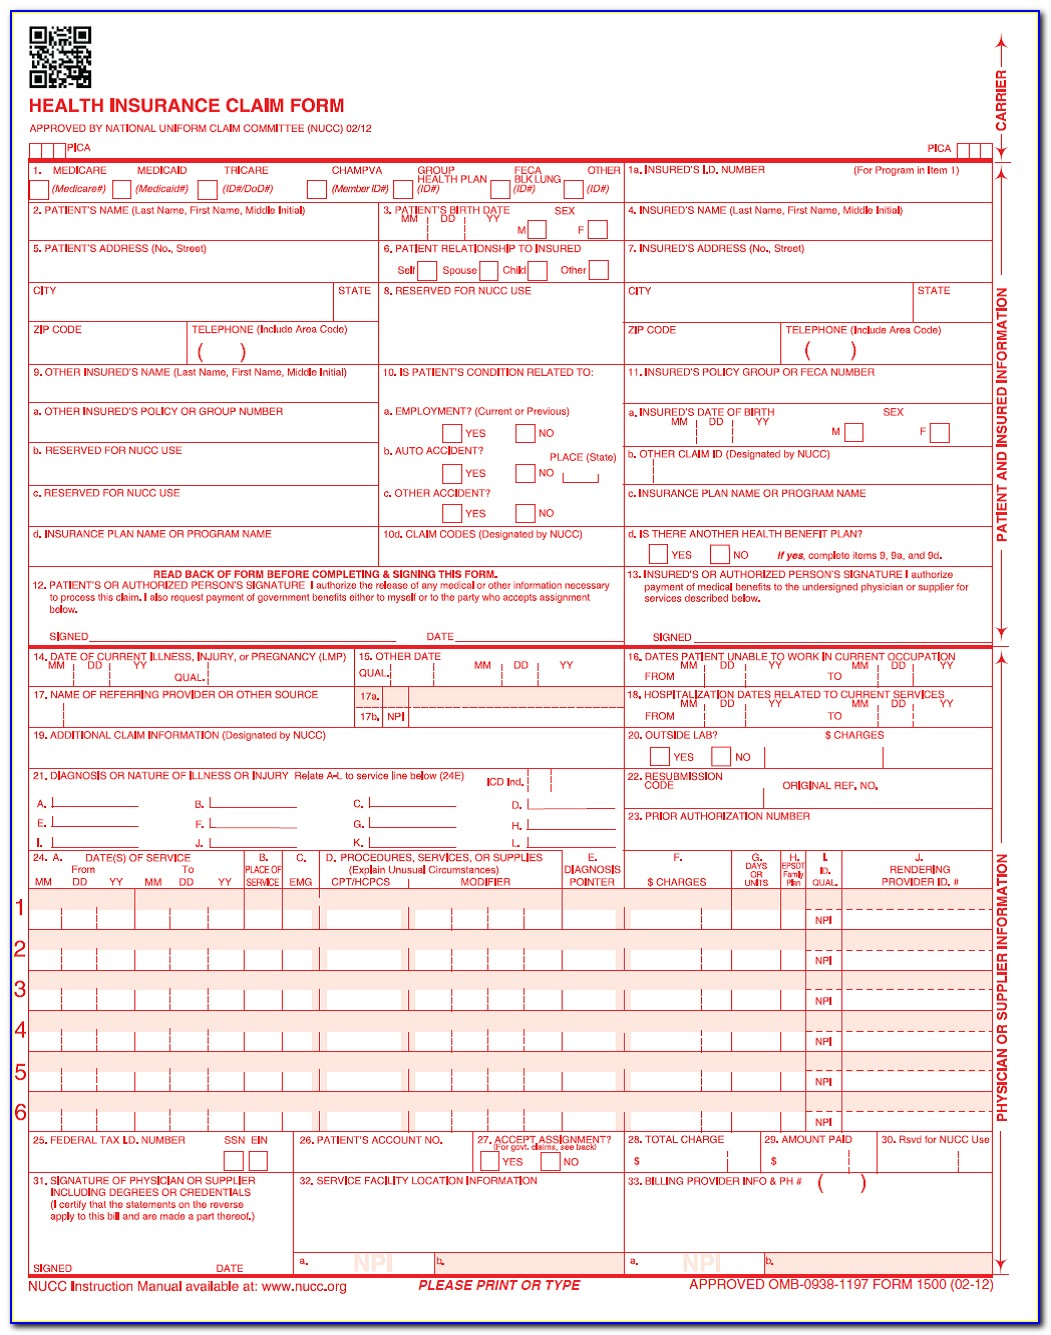 Sample Cms 1500 Claim Form Medicare